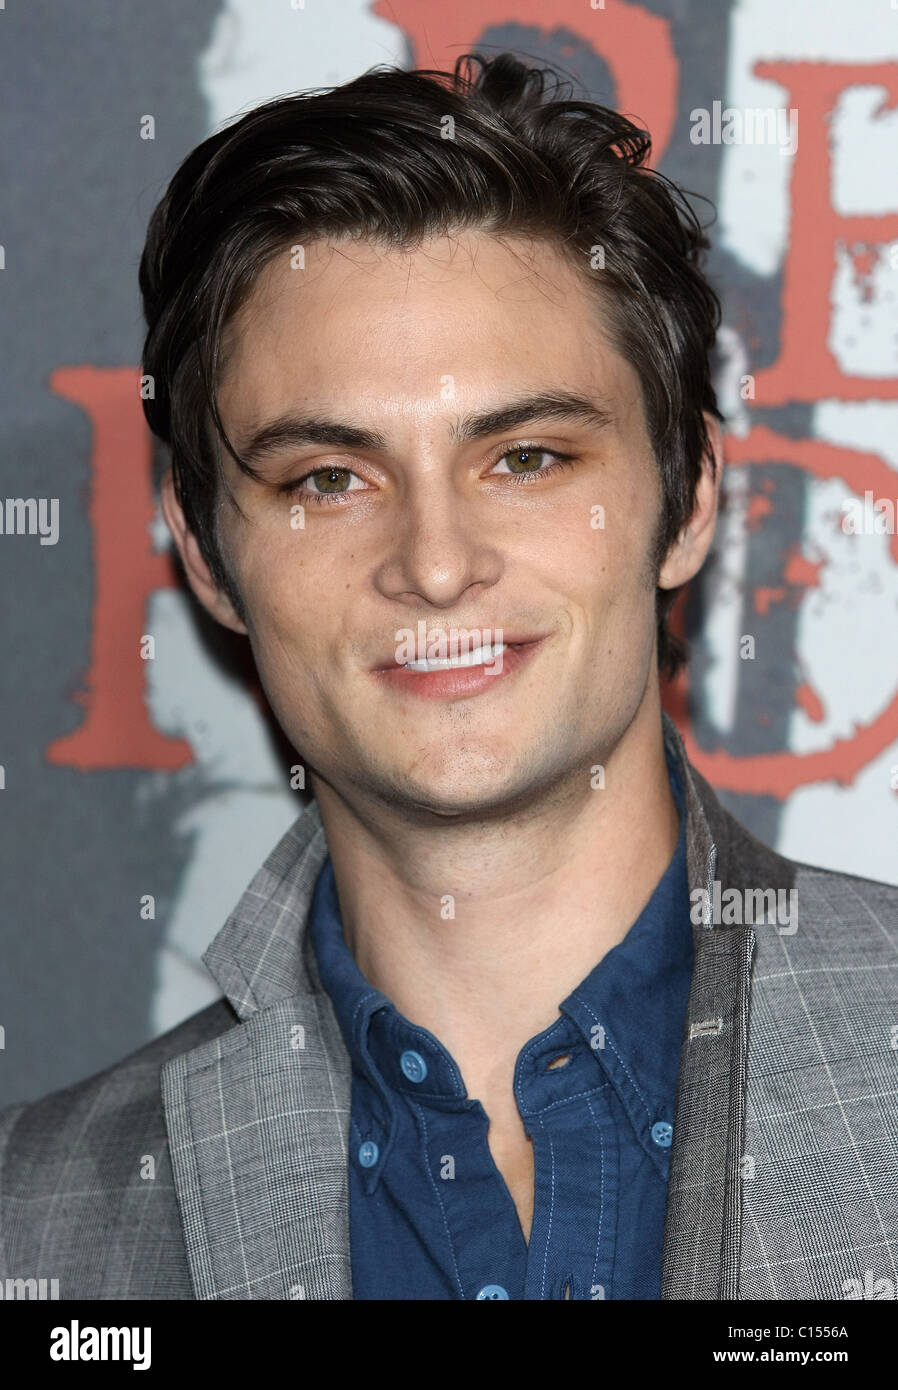 SHILOH FERNANDEZ RED RIDING HOOD LOS ANGELES PREMIERE. WARNER BROS. HOLLYWOOD LOS ANGELES CALIFORNIA USA 07 March - Stock Image